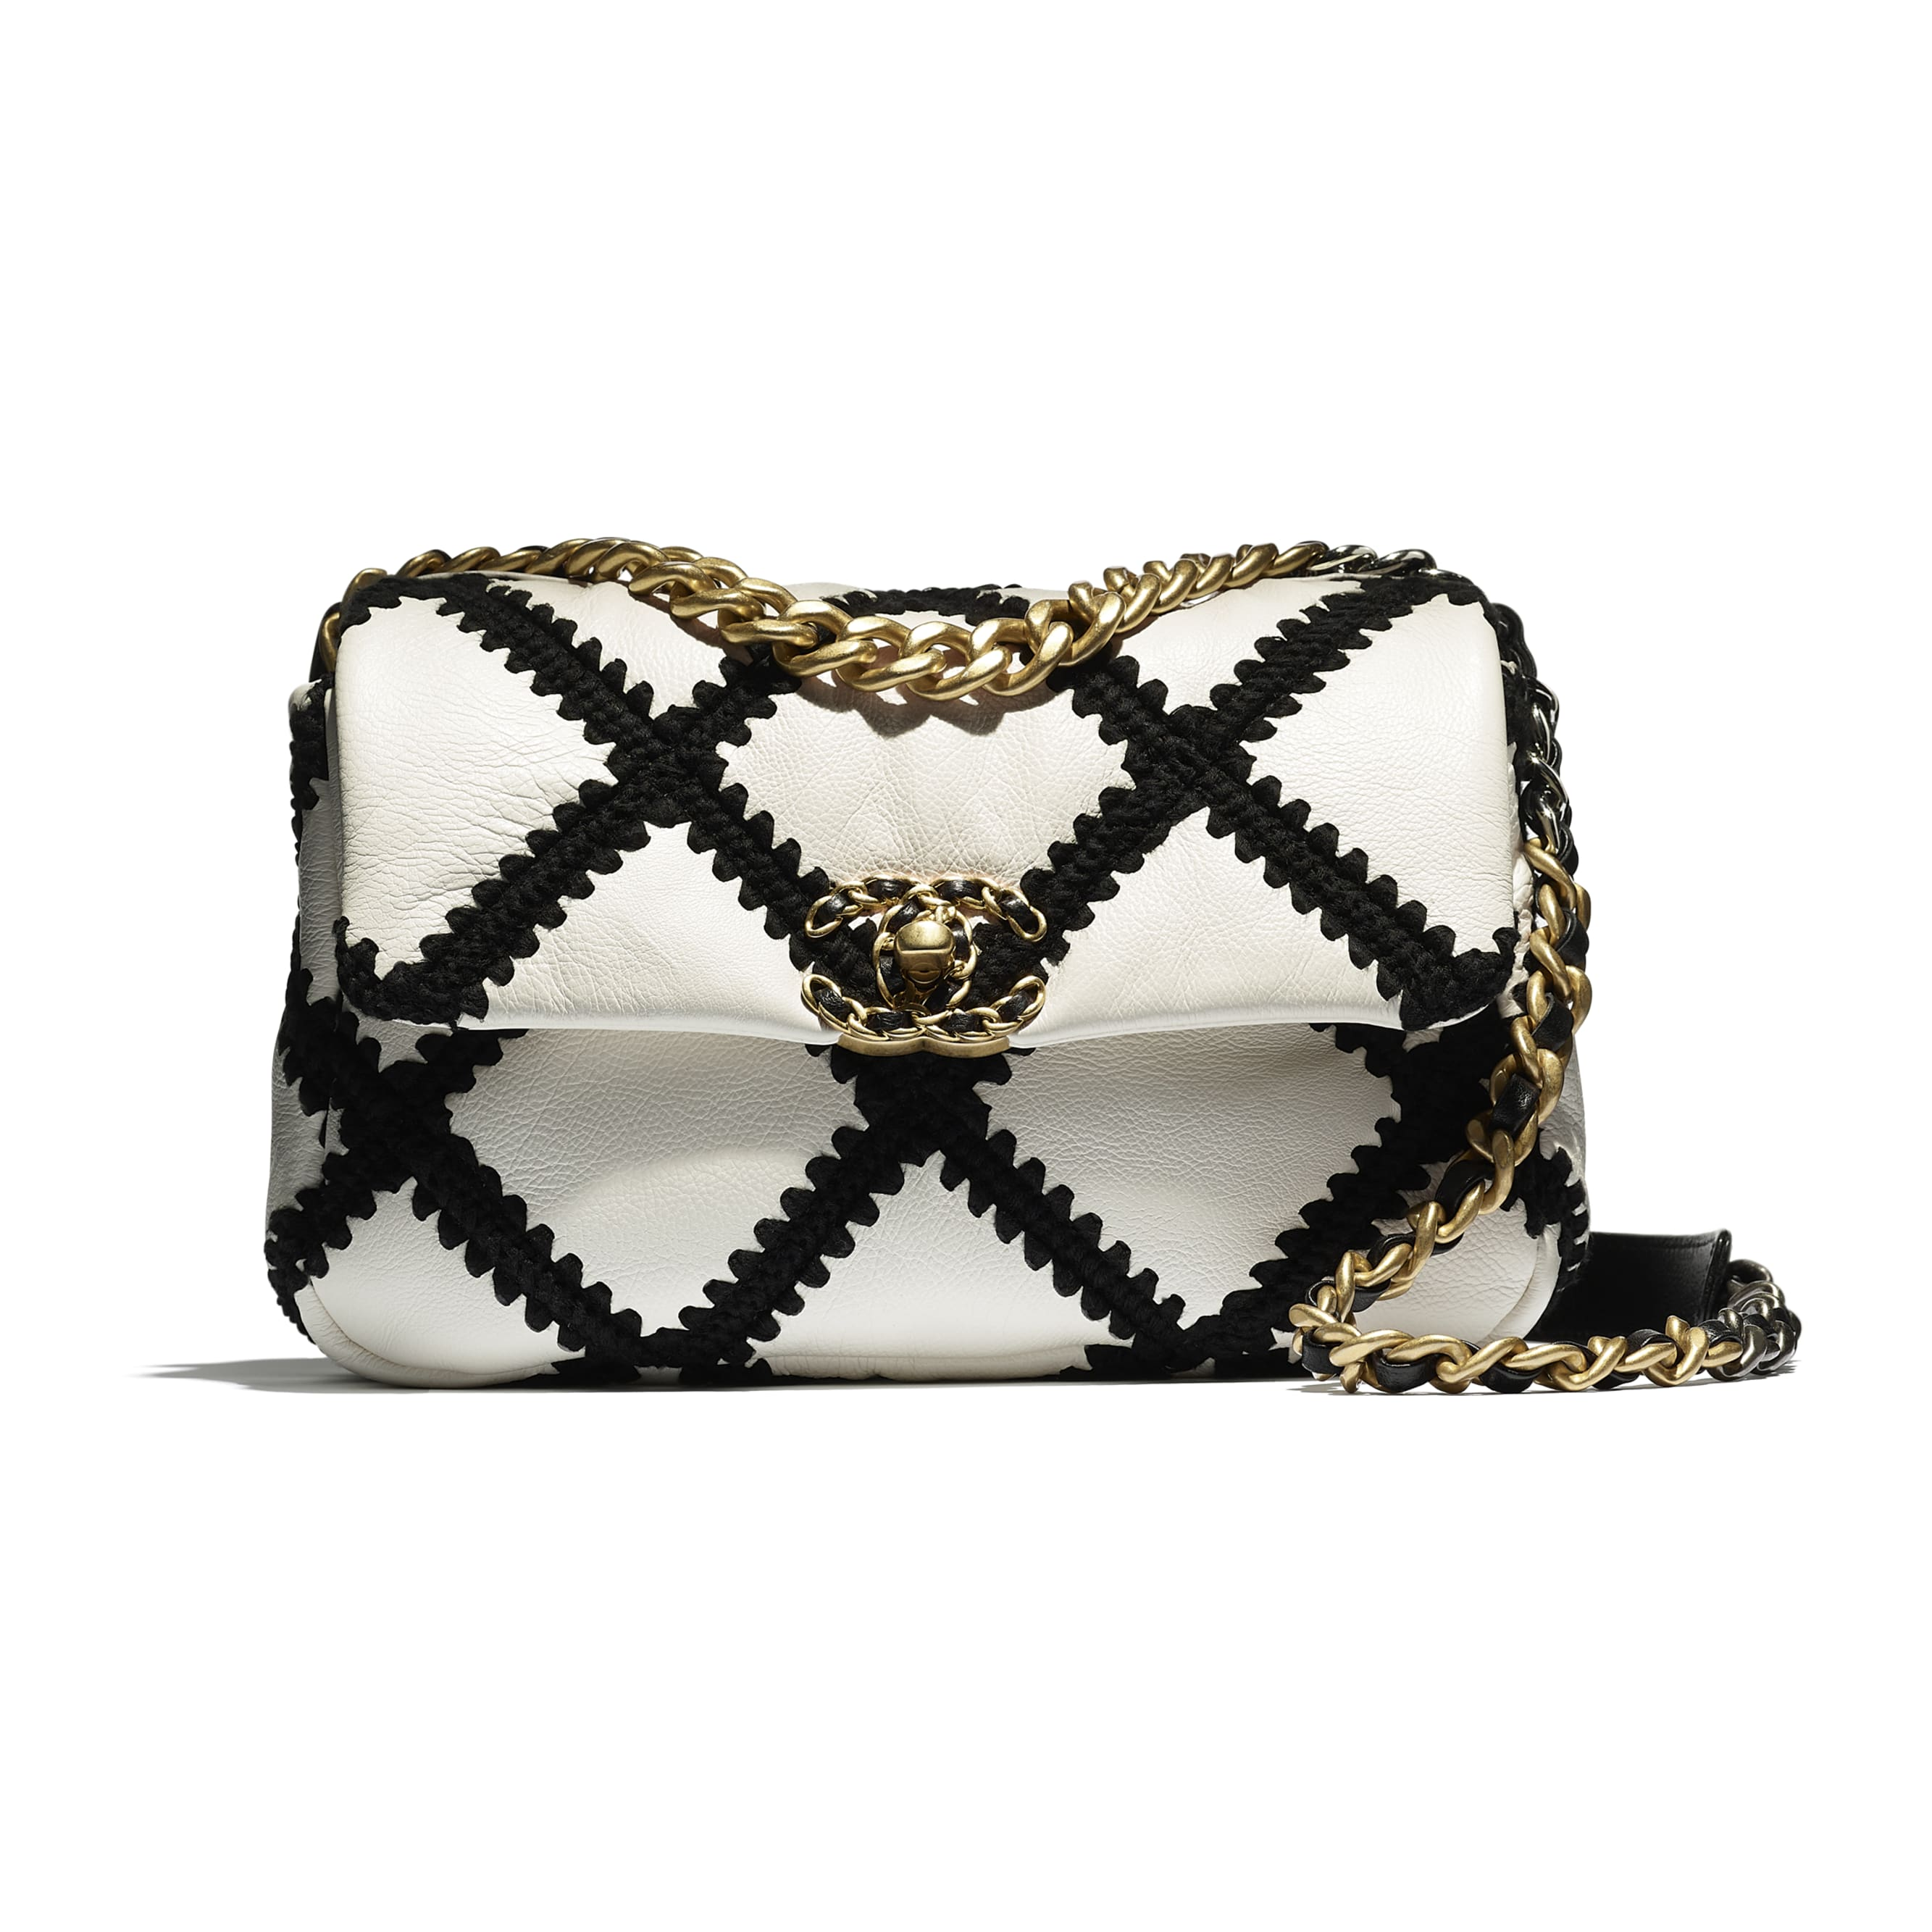 CHANEL 19 Handbag - White & Black - Calfskin, Crochet, Gold-Tone, Silver-Tone & Ruthenium-Finish Metal - CHANEL - Extra view - see standard sized version